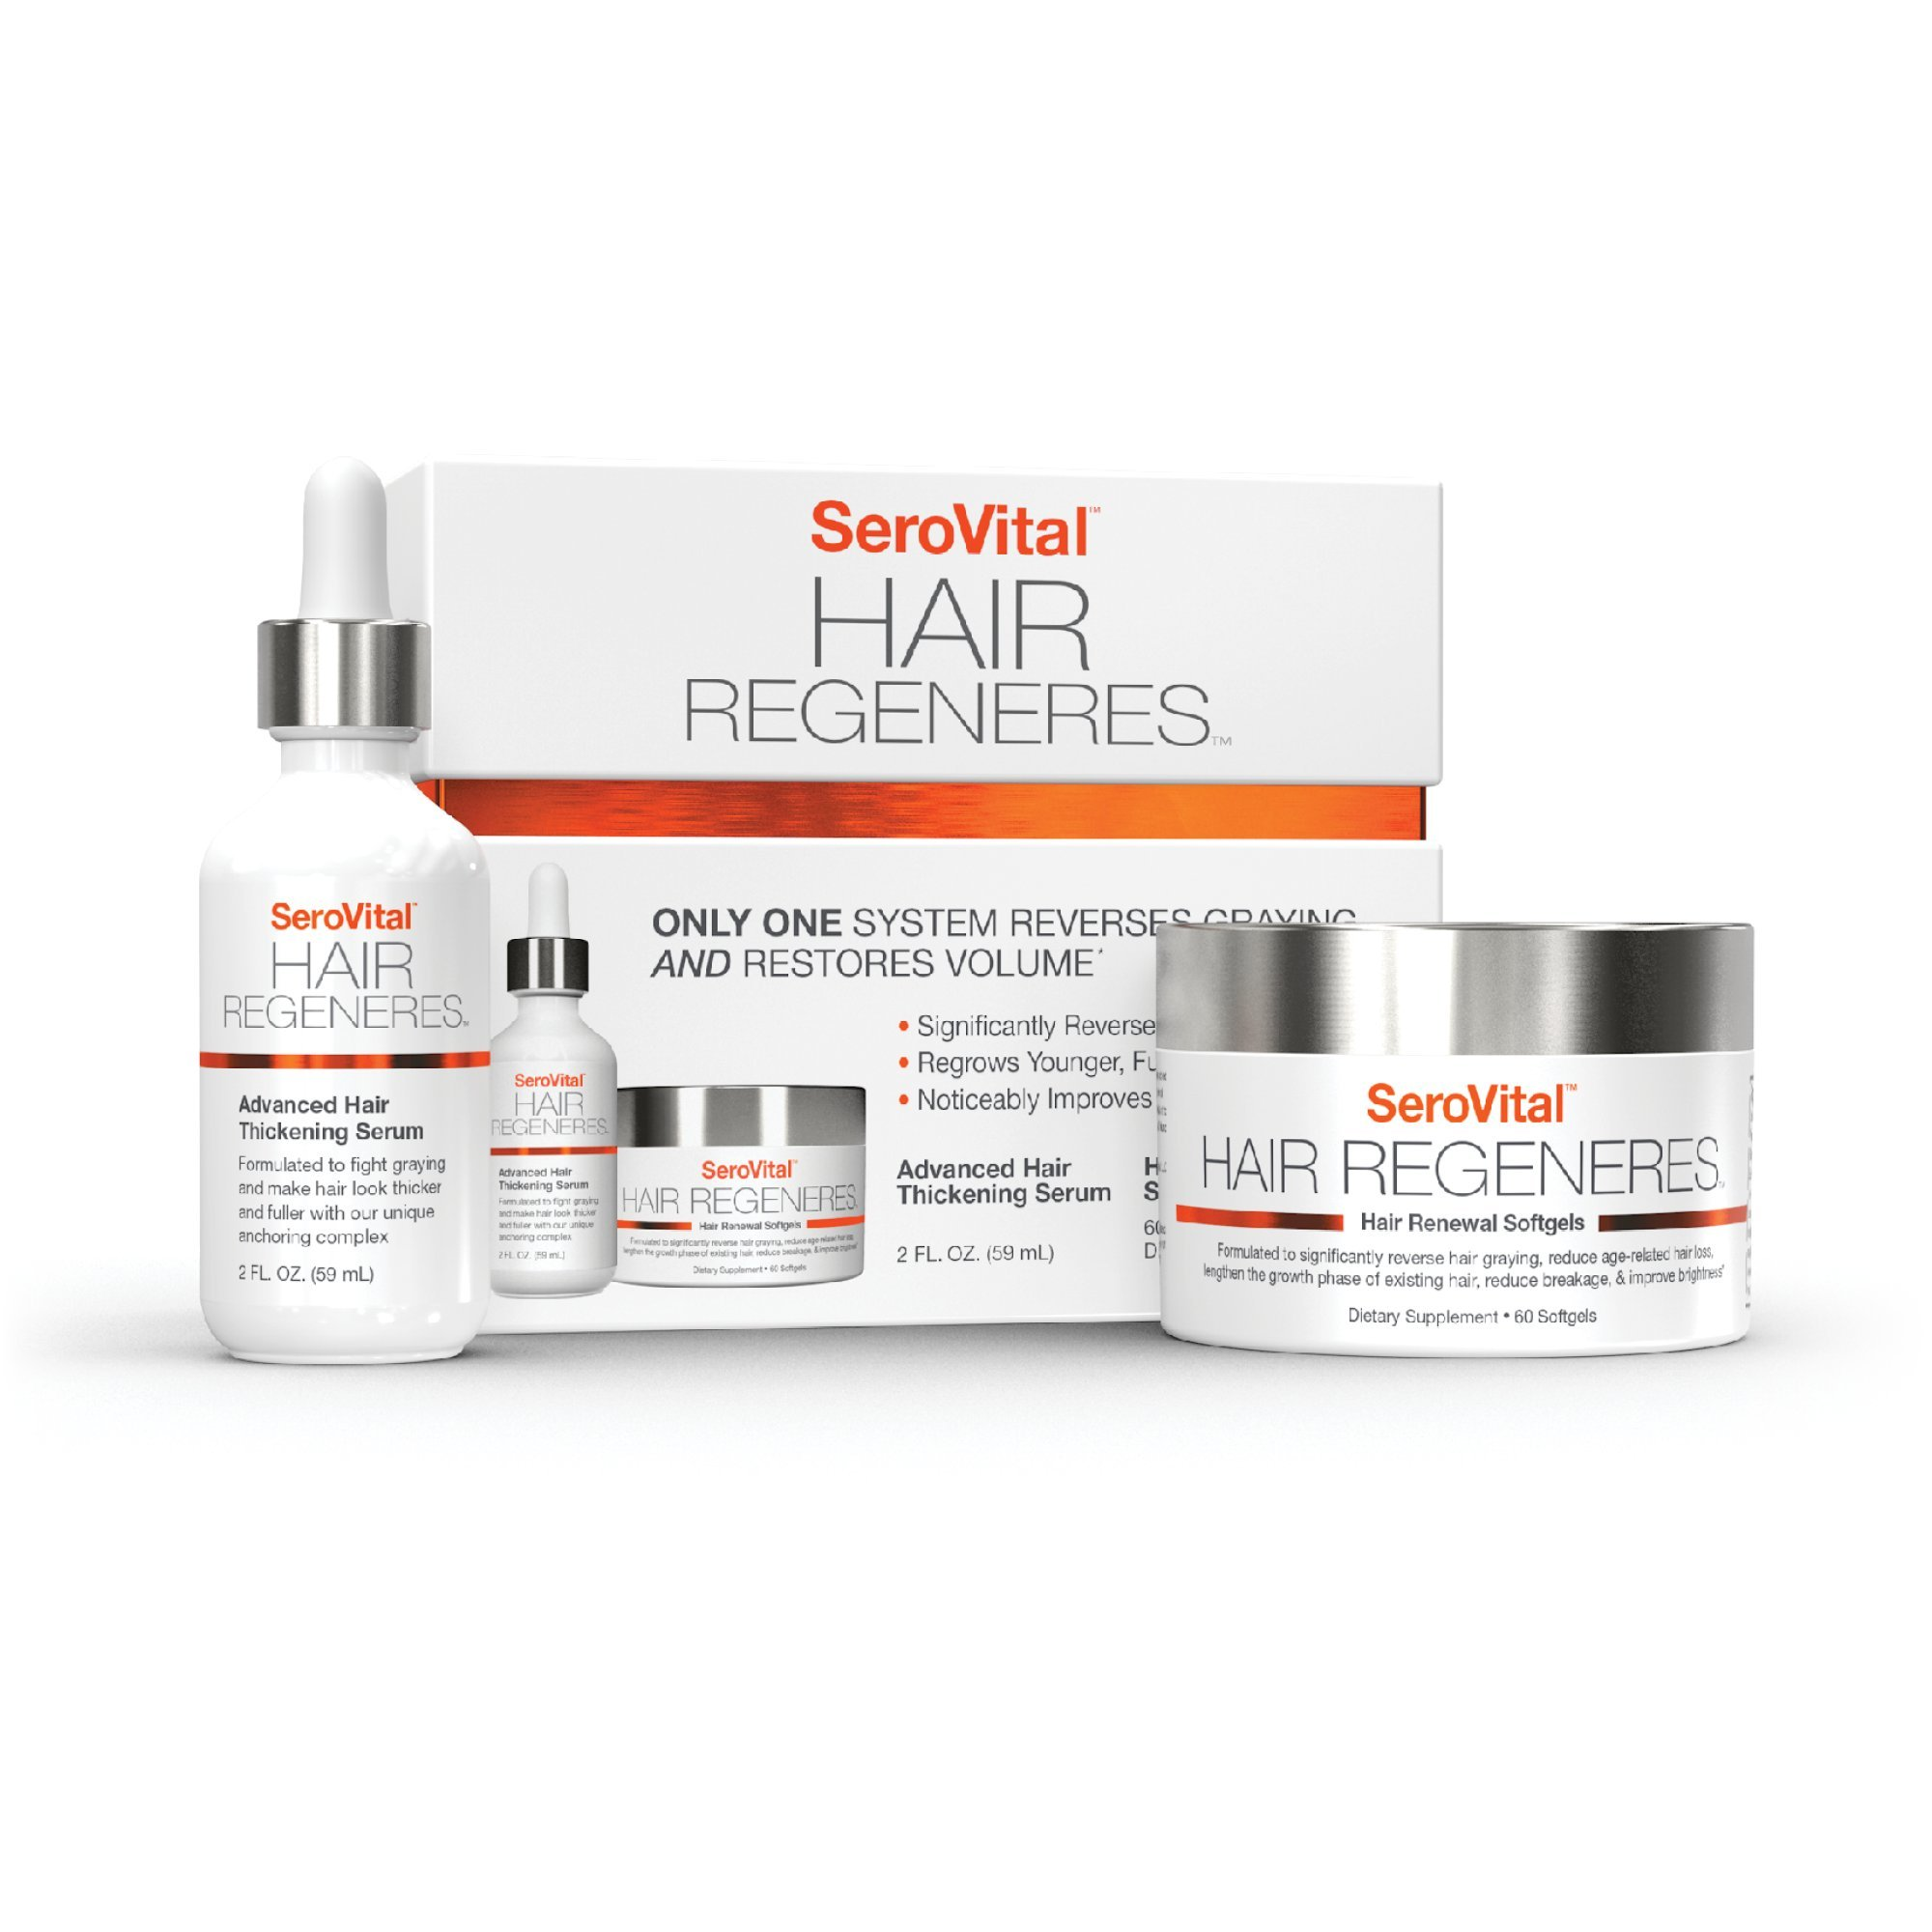 Serovital Hair Regeneres Revolutionary Significantly